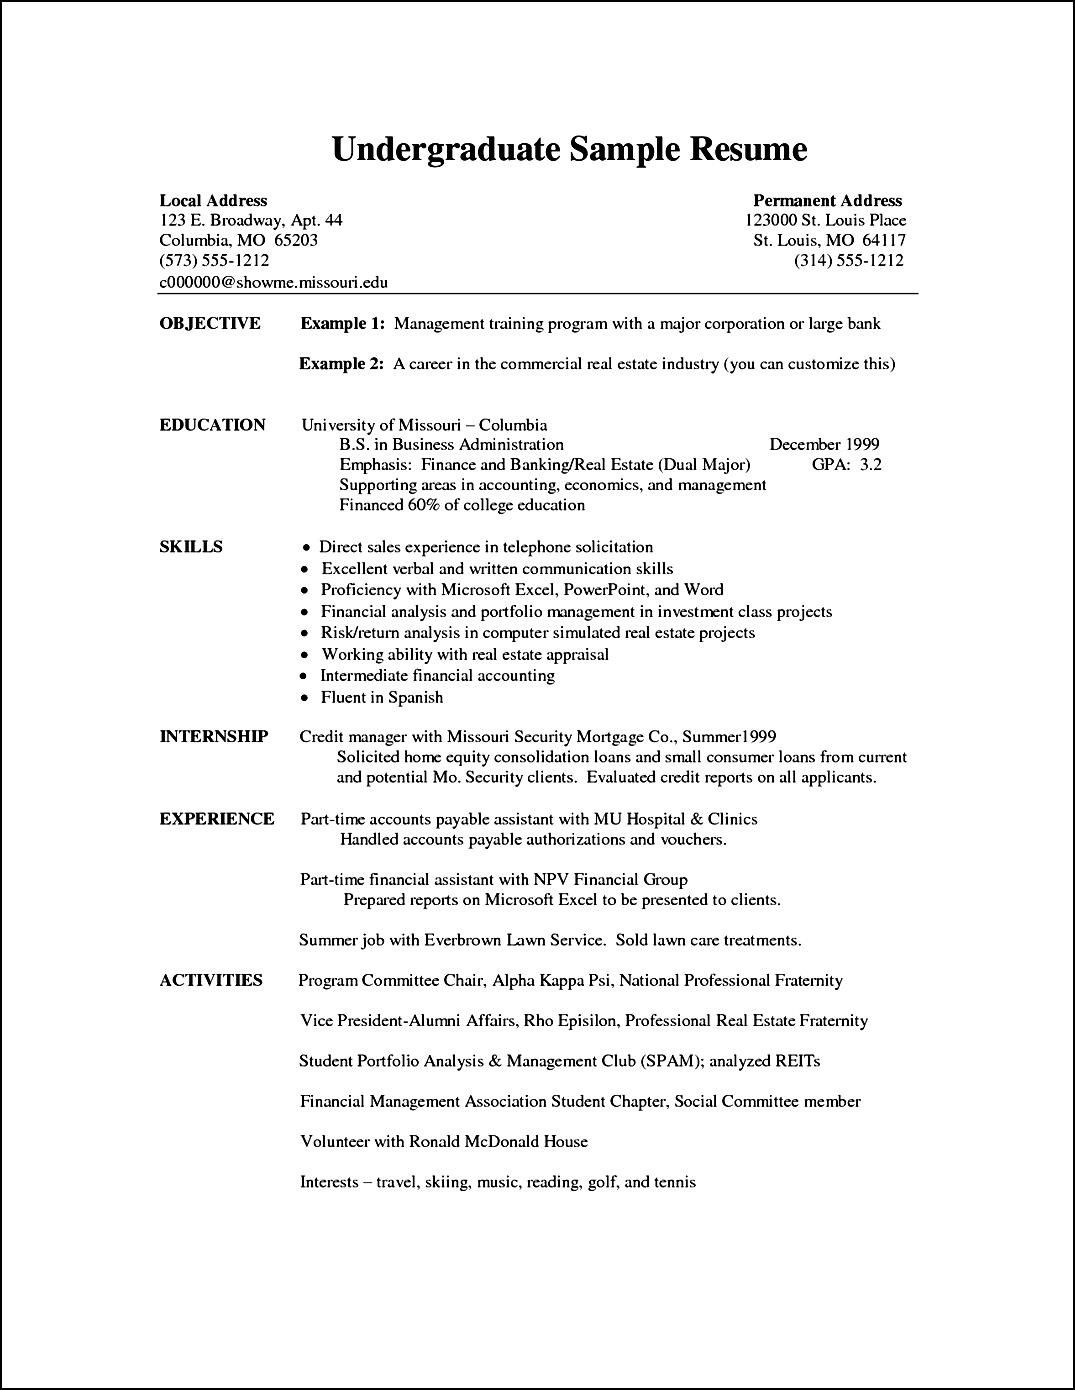 Sample Resume Interesting Sample Resume Undergraduate Cover Letter For Vitae  Home Design 2018